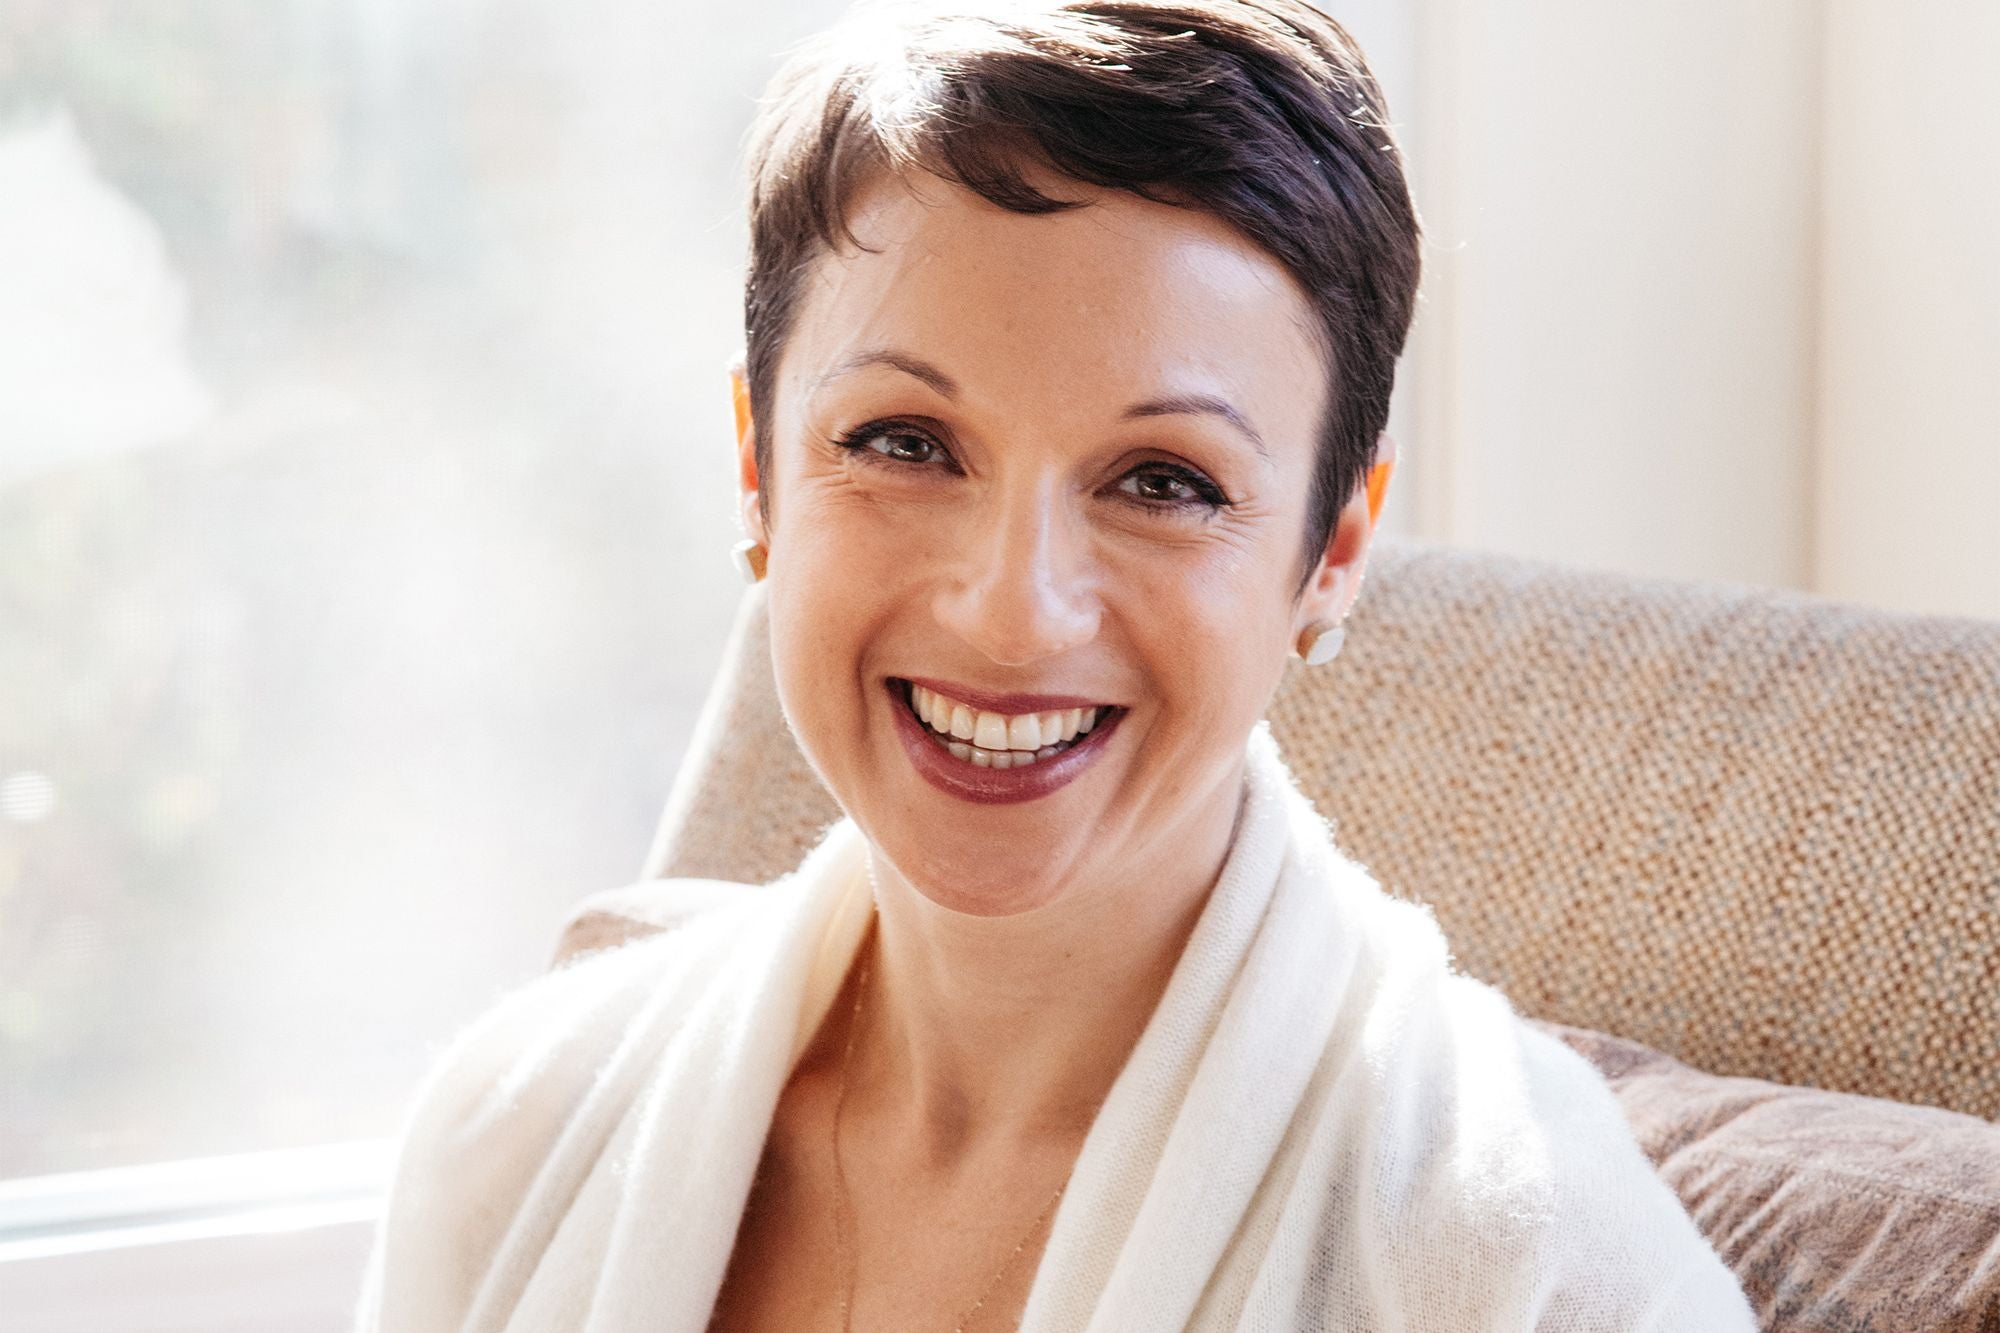 Happier Founder Nataly Kogan Knows We Can All Still Be Happy